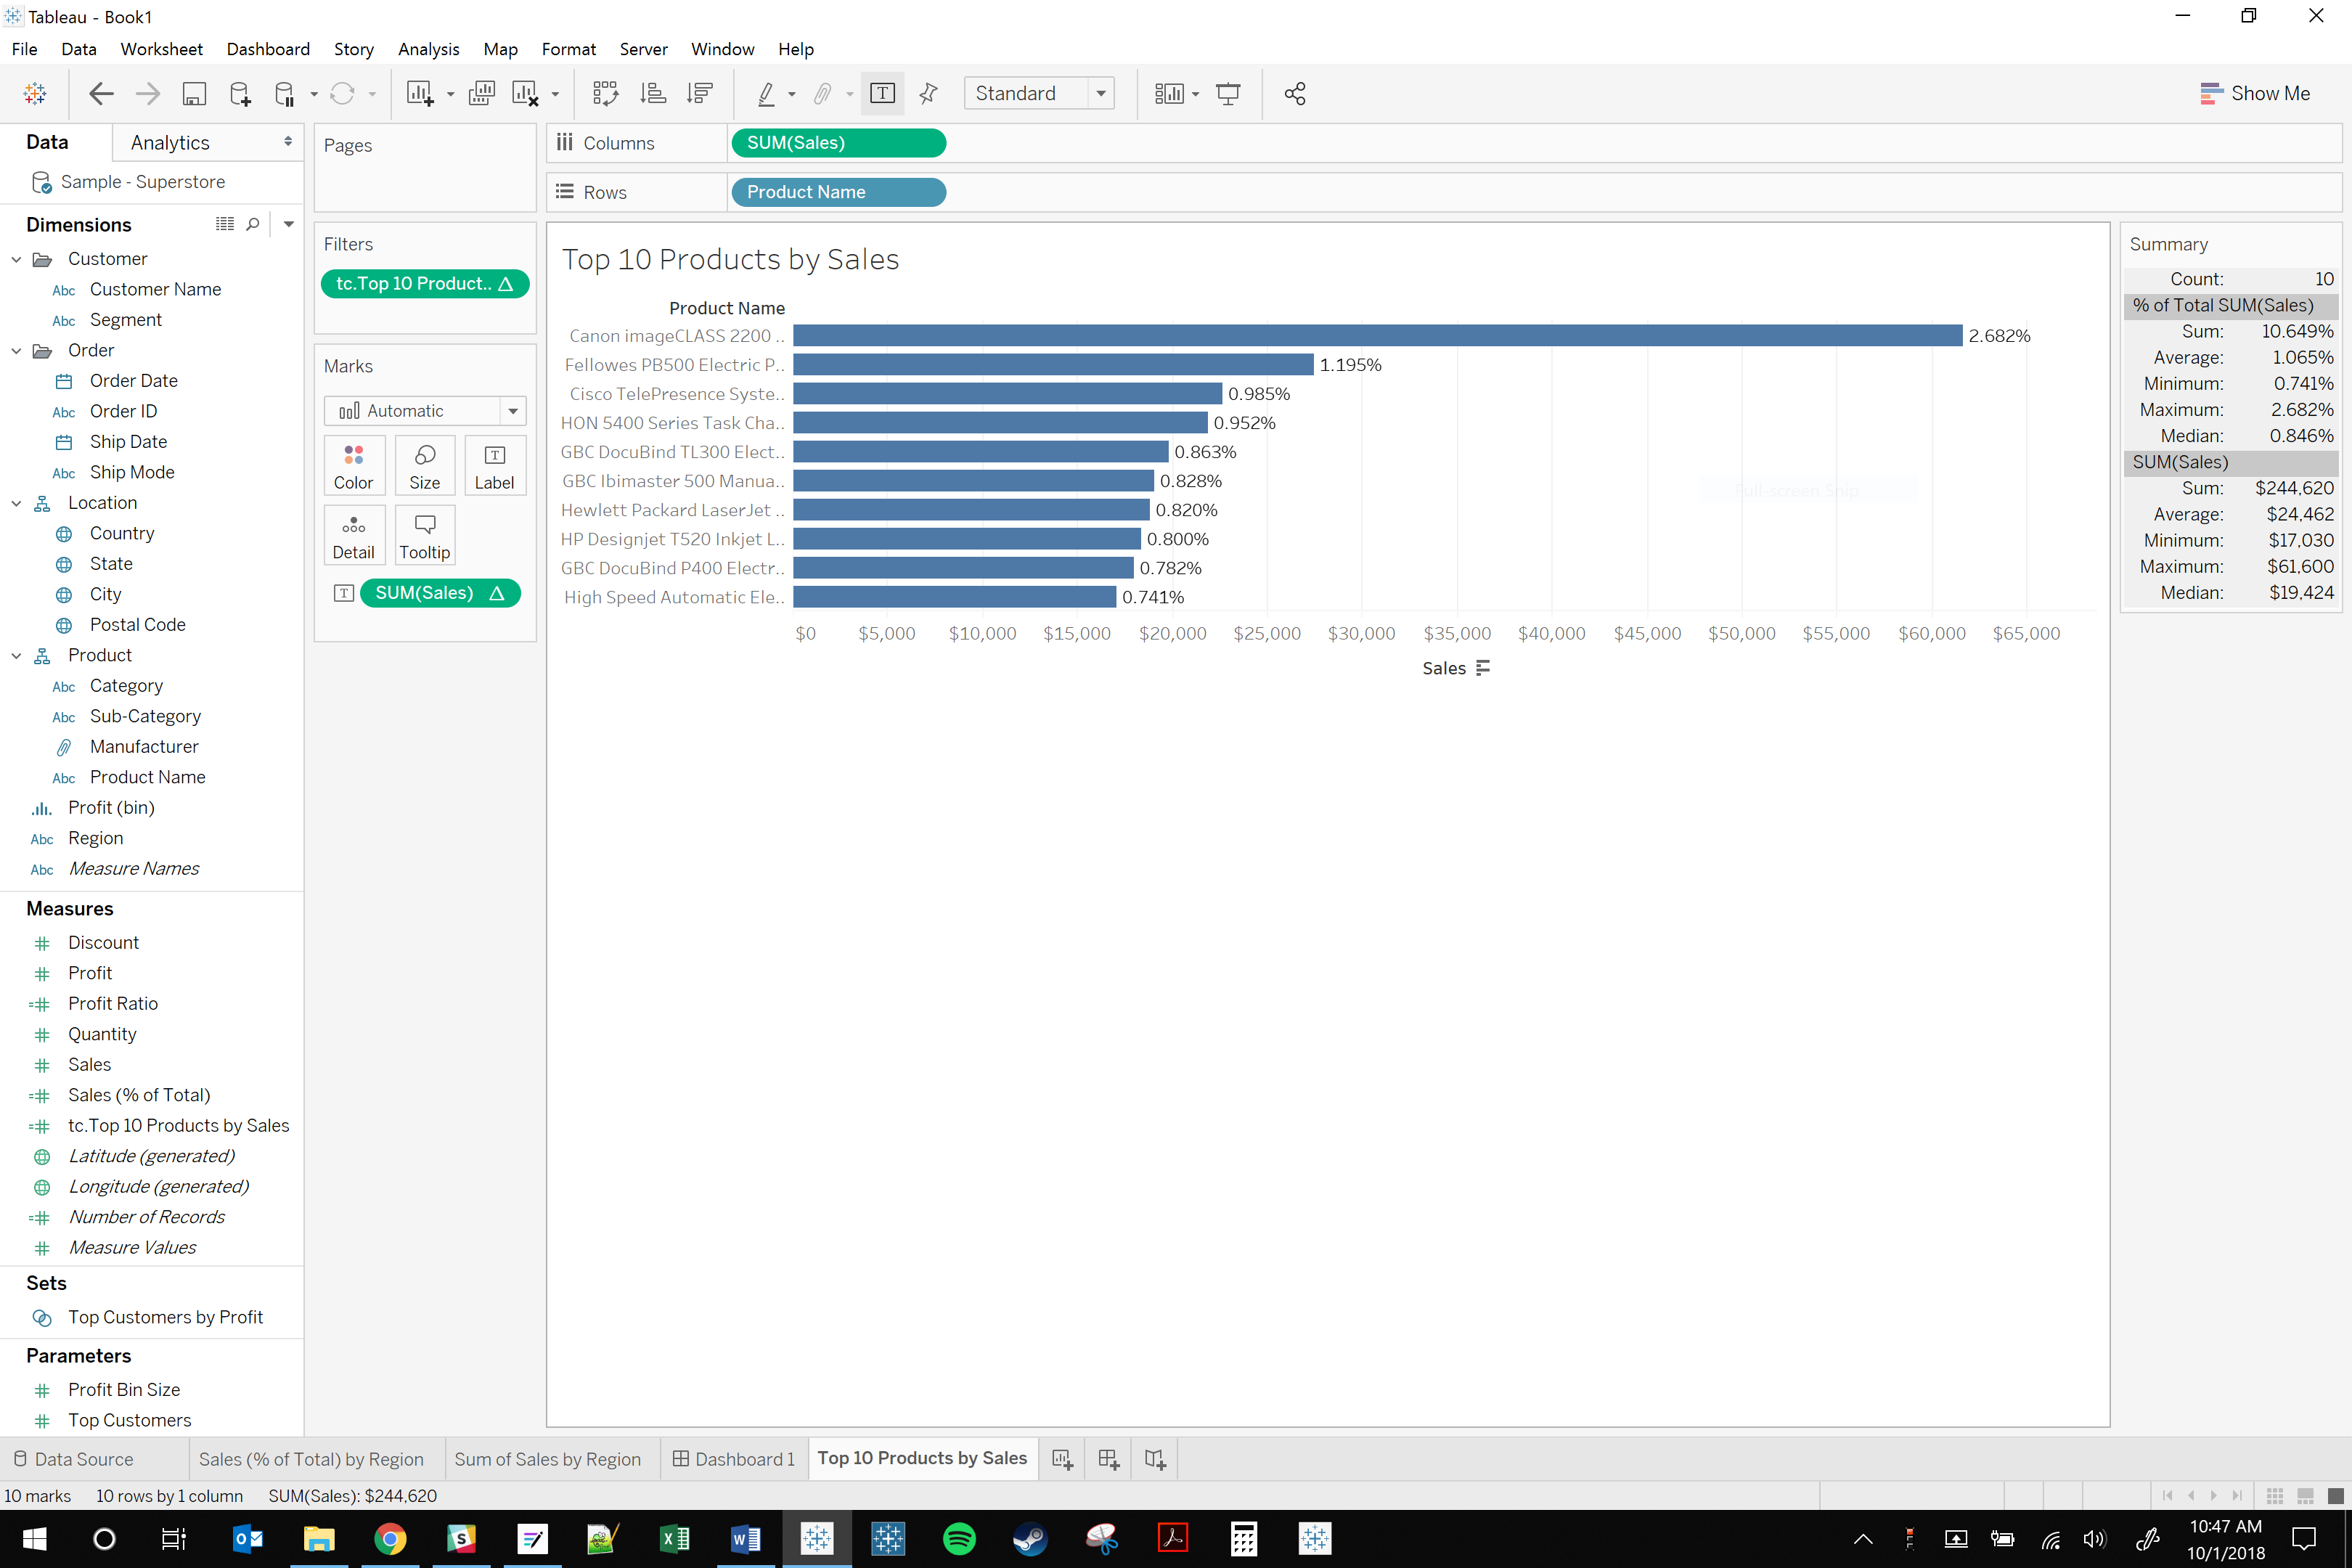 hiding data with filters and calculations in Tableau